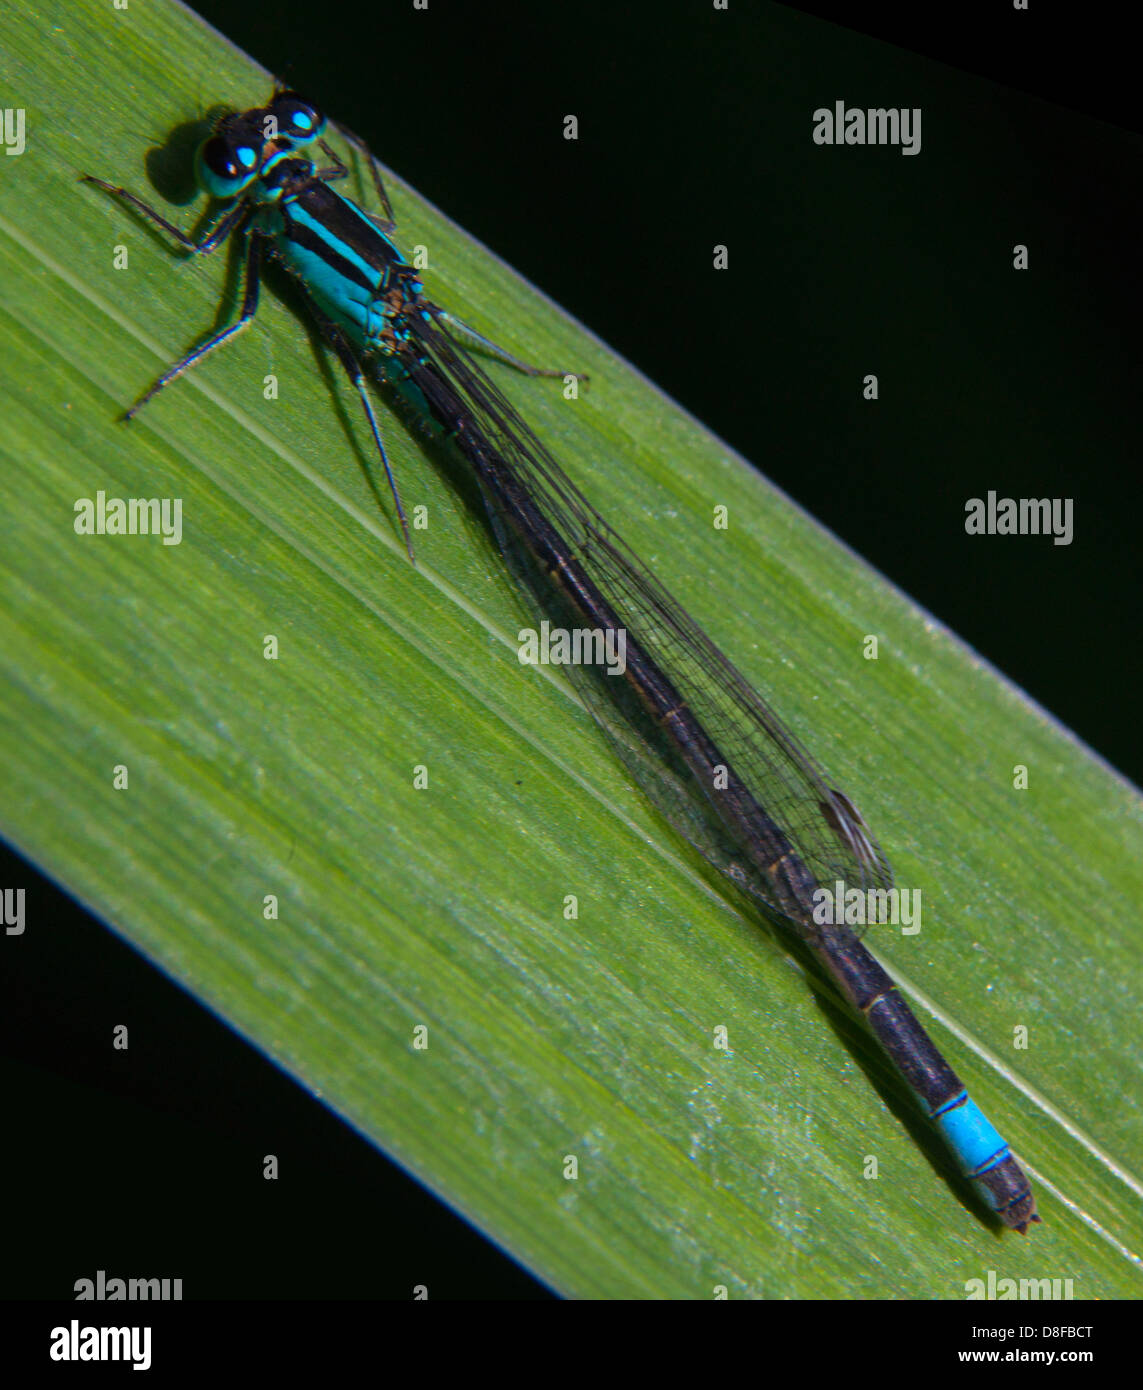 Common Blue Damsel Fly on green reed England United Kingdom - Stock Image